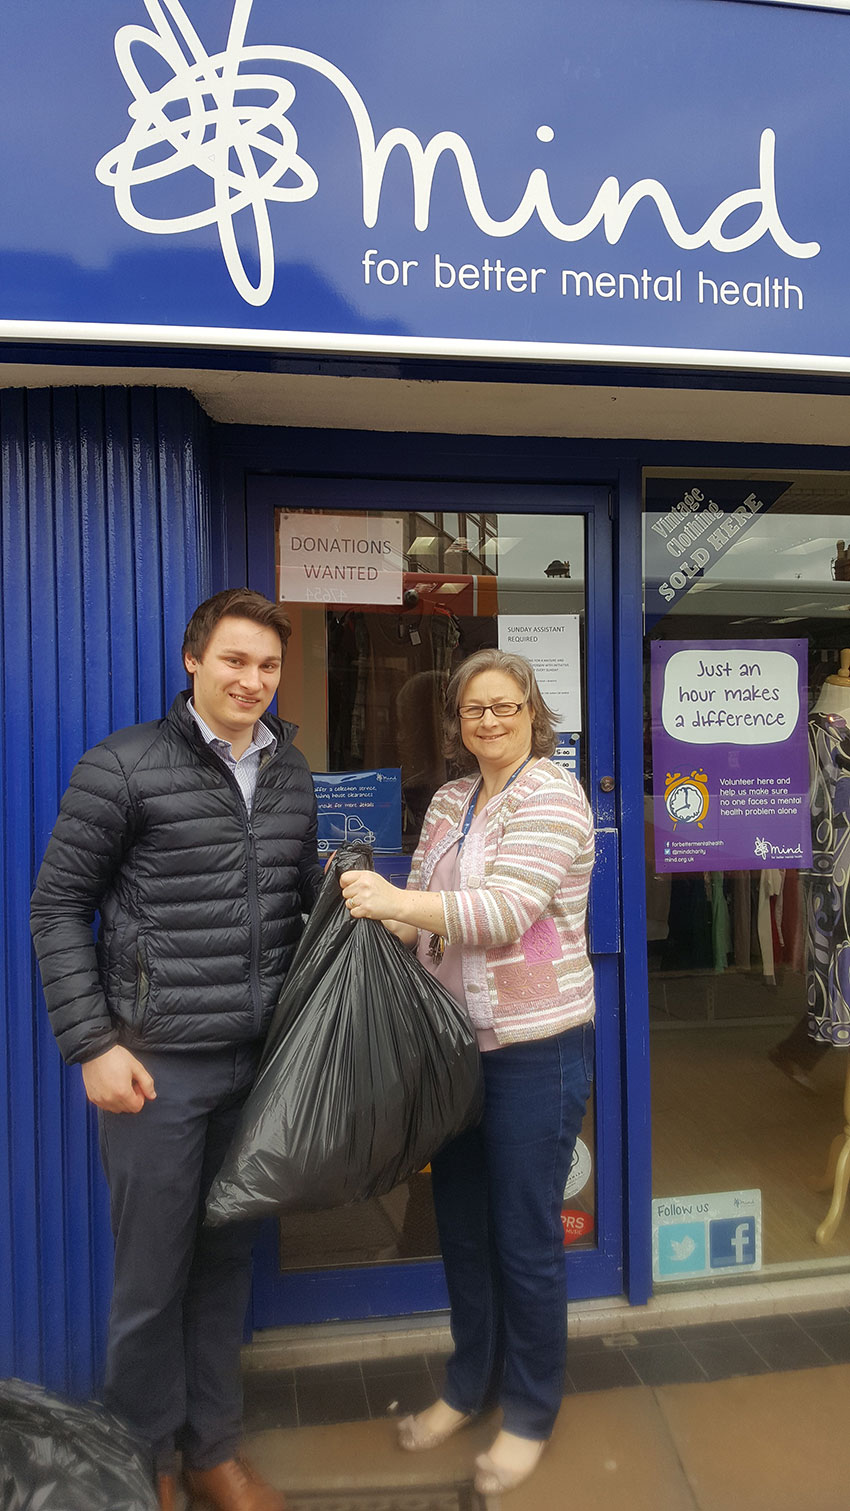 News - Group - Rosconn Support Stratford Charity 'Mind' - Image